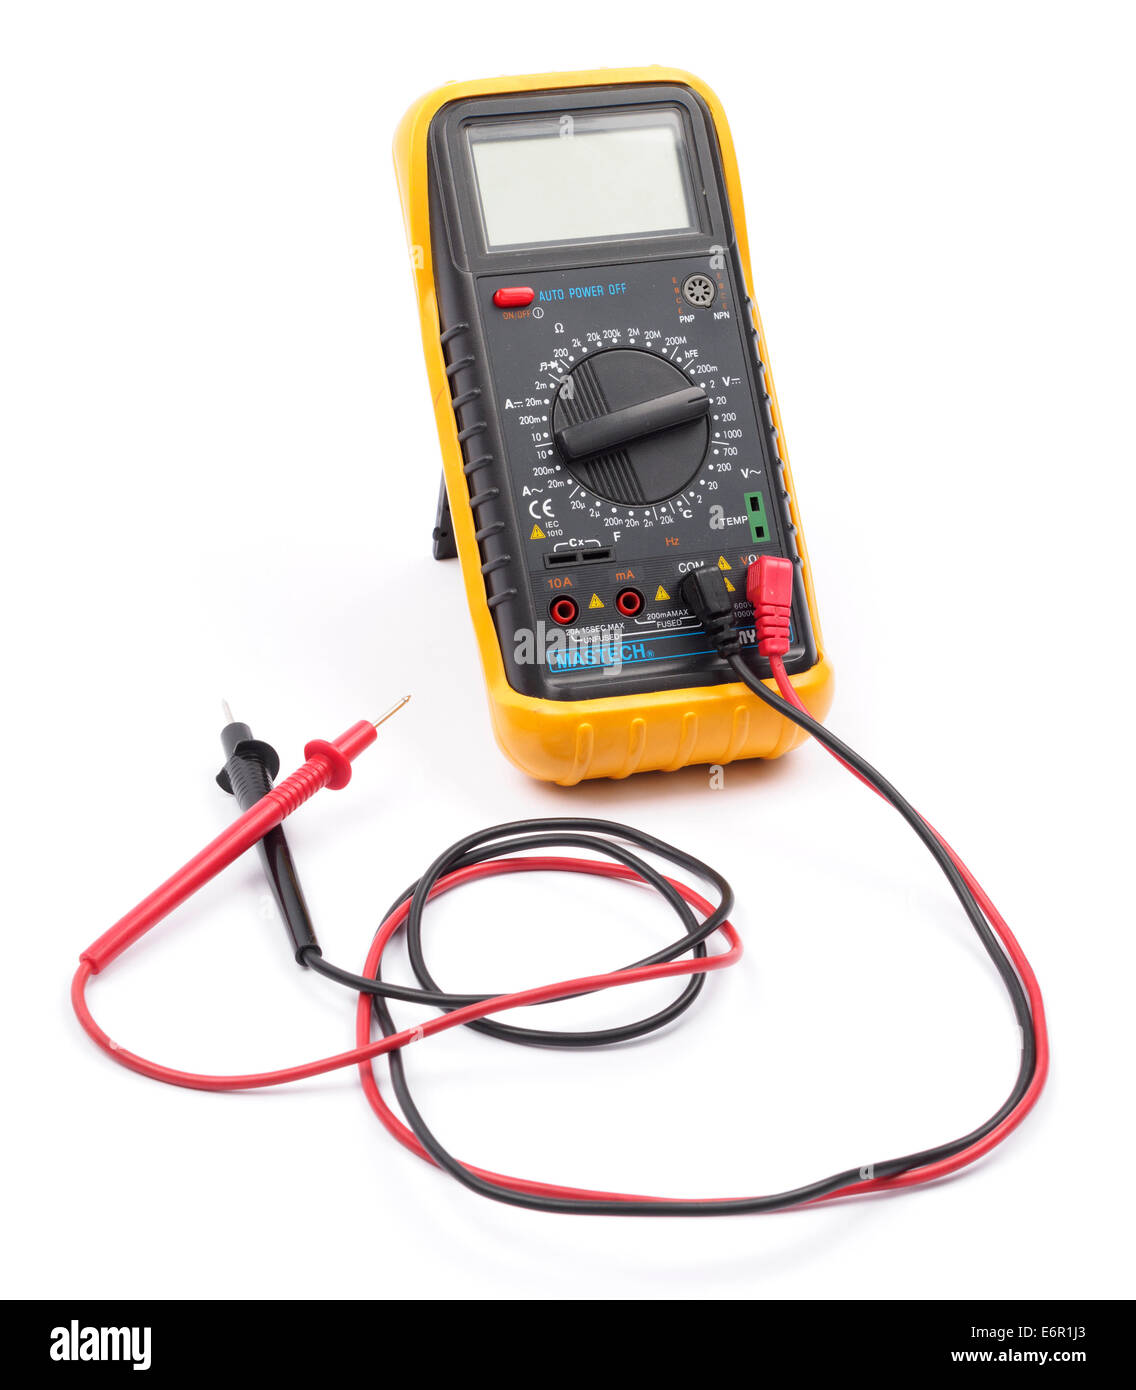 Digital multimeter cut out isolated on white background - Stock Image